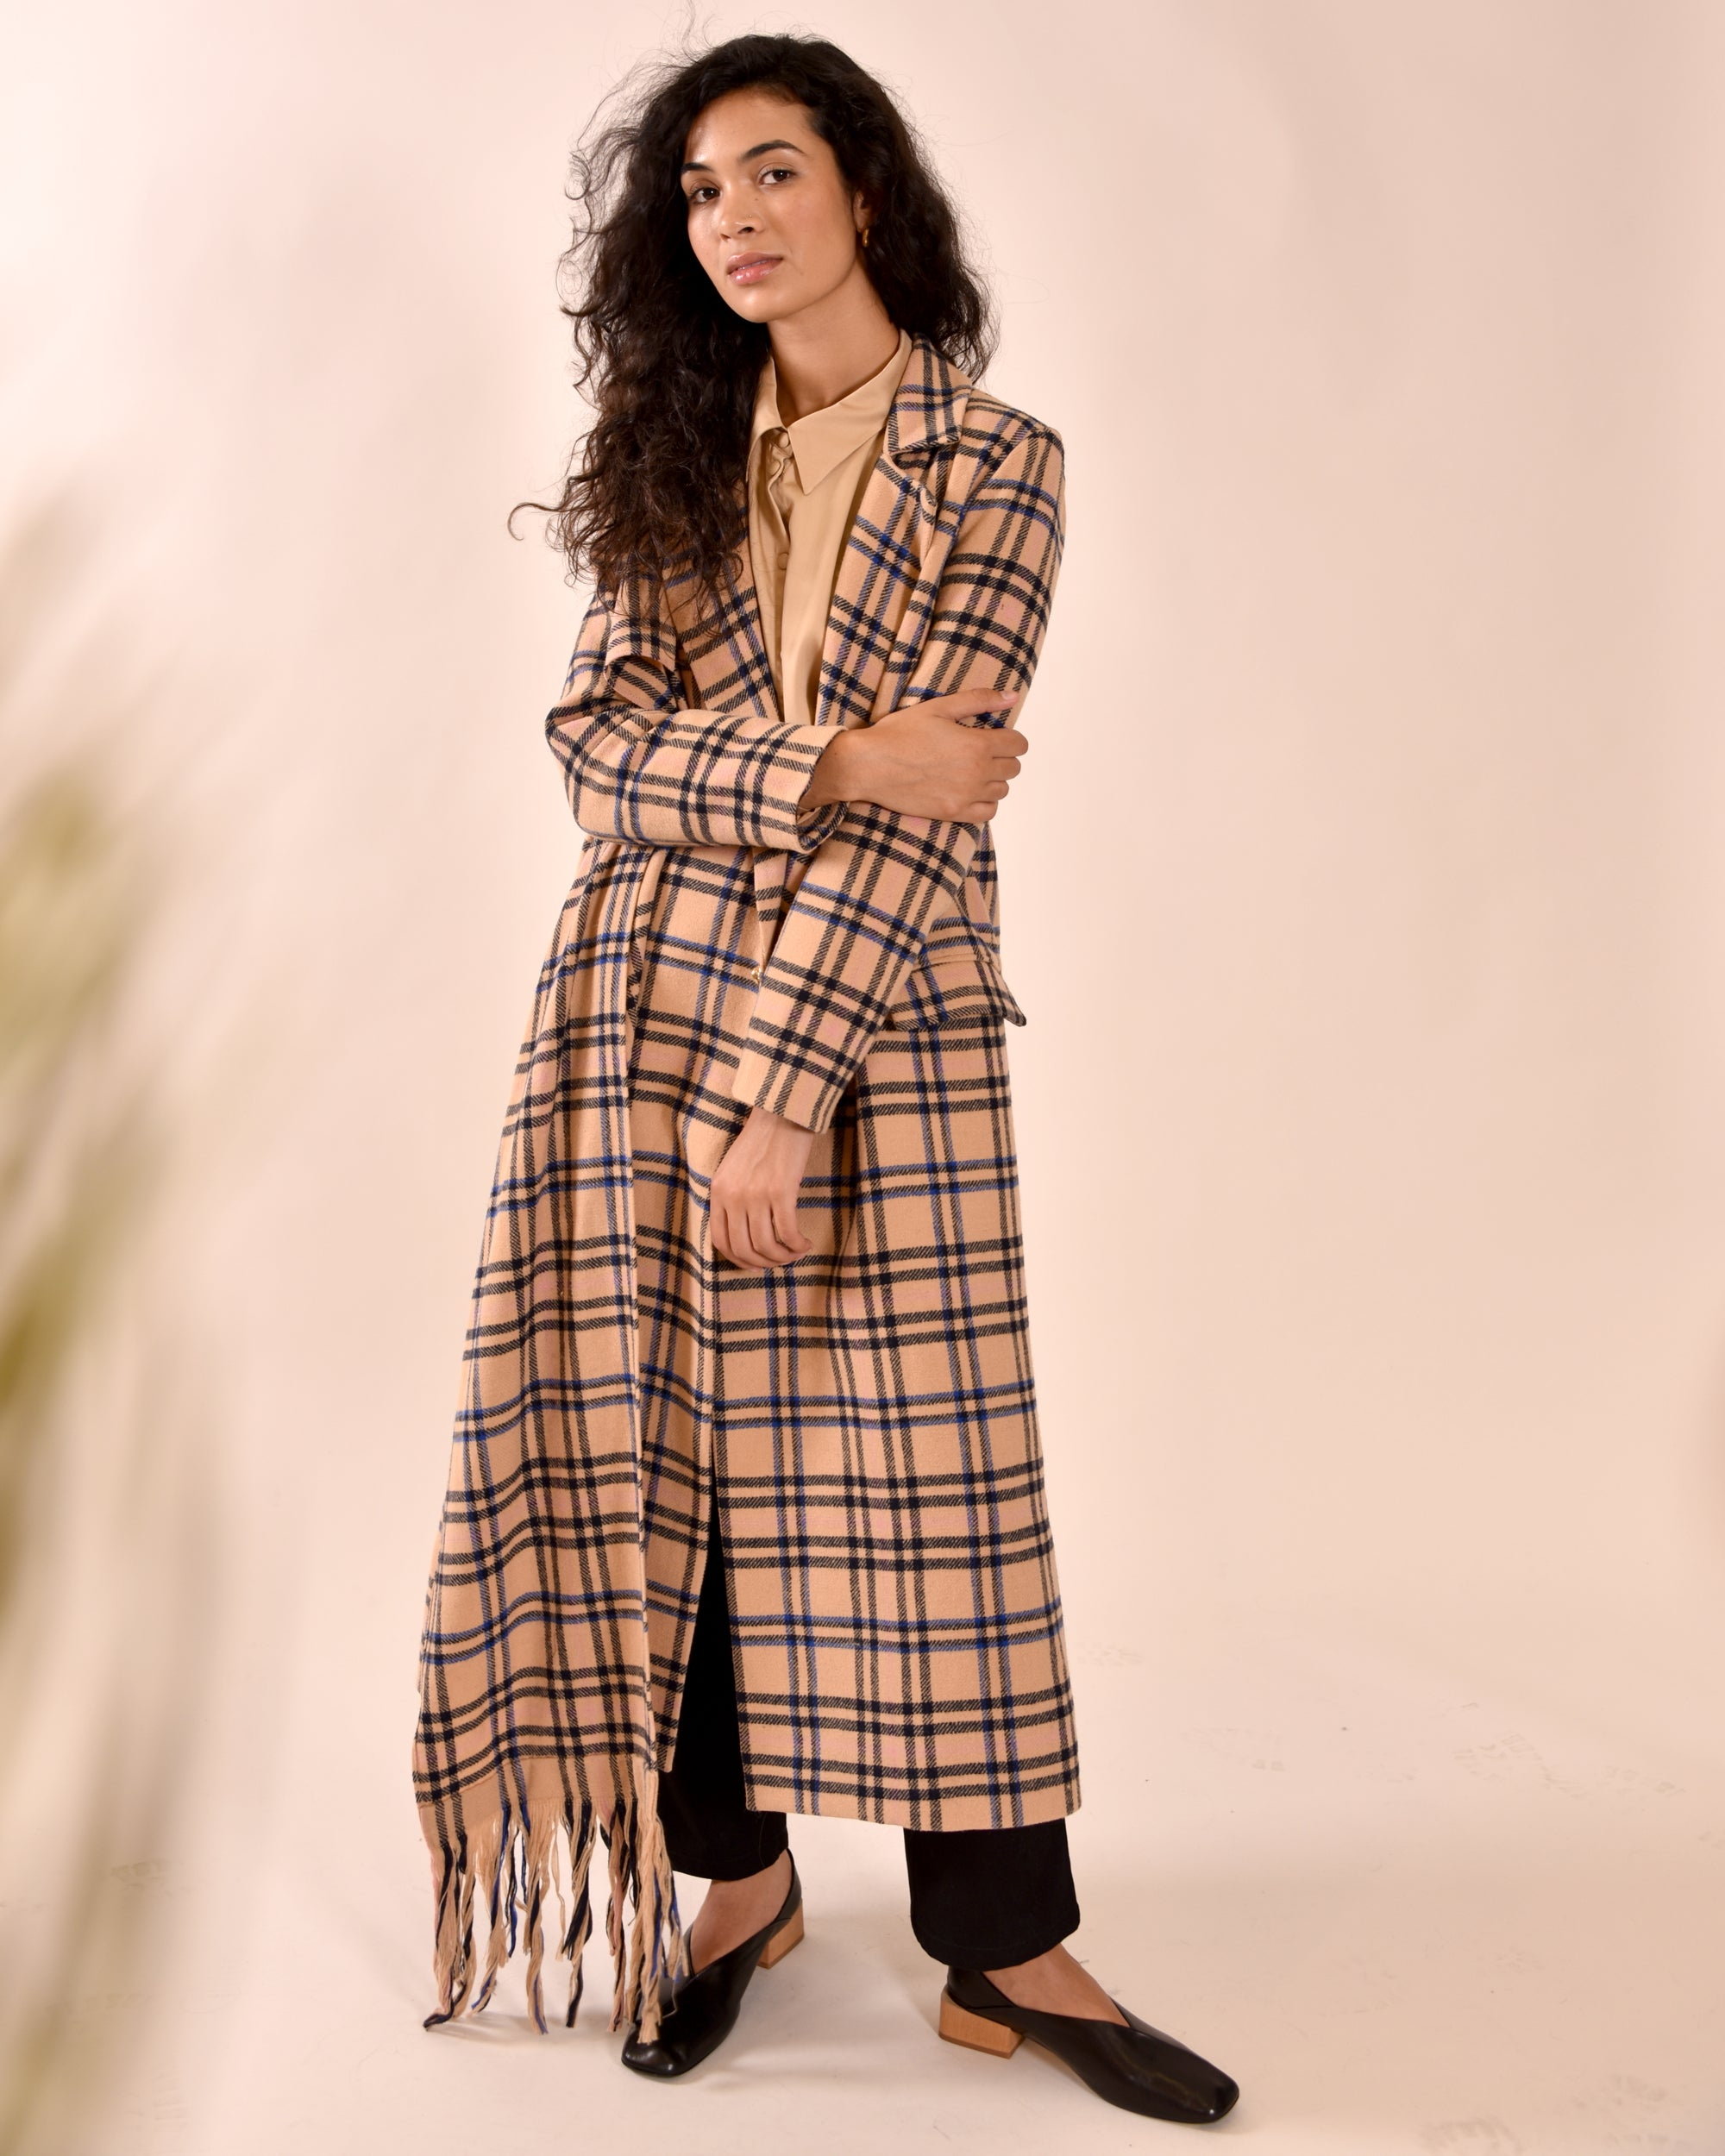 Atrium Dublin - Mother of Pearl Rowan Tan Check Coat. Sustainably made wool coat with built-in scarf.